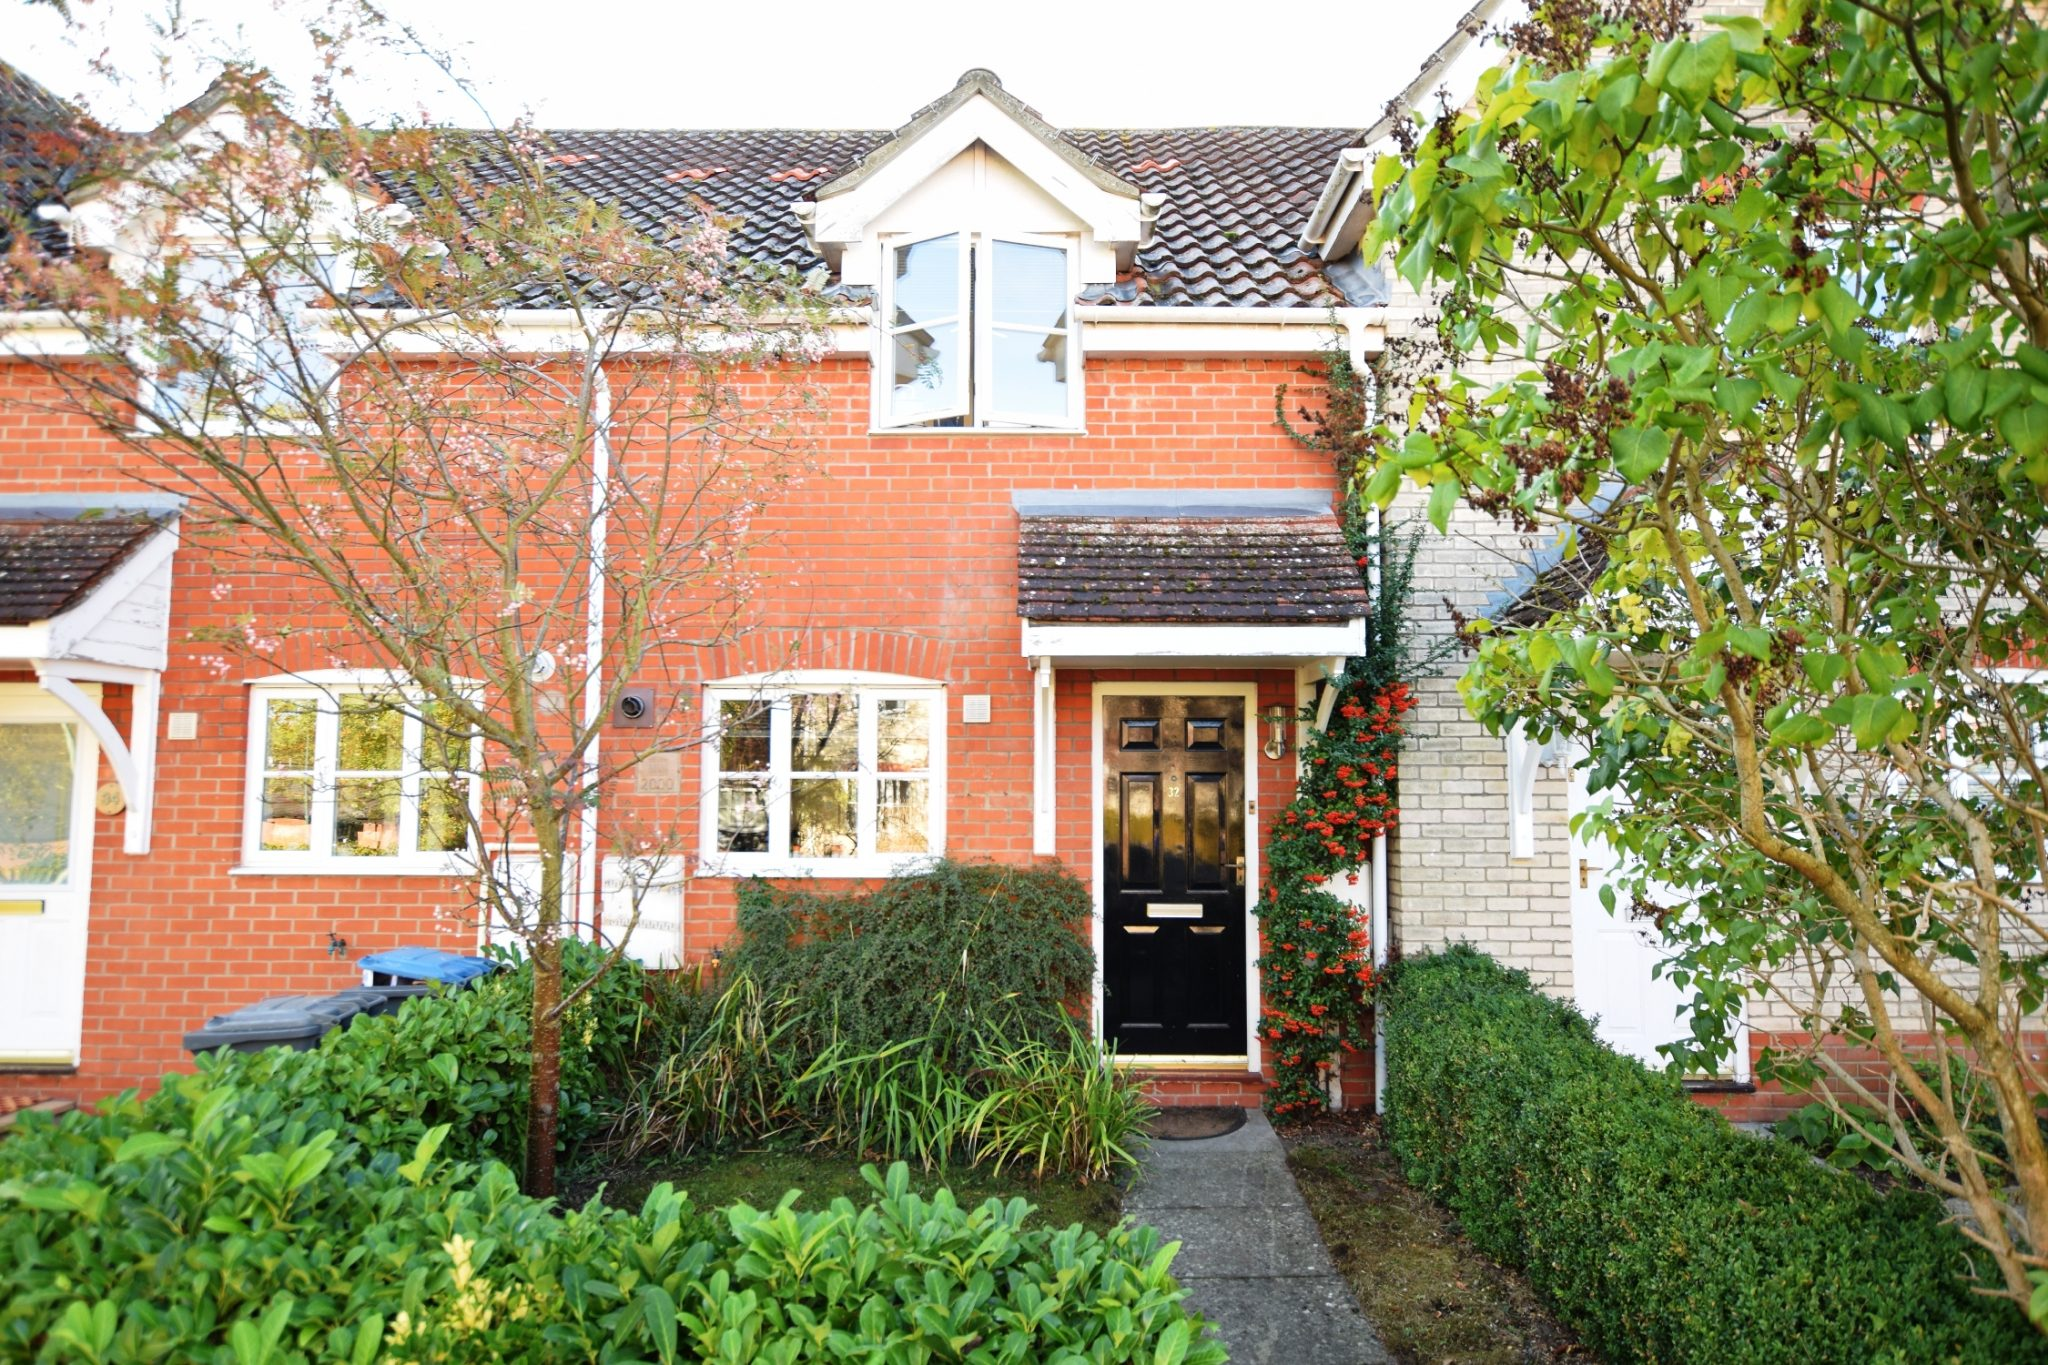 A modern 2 bedroom property with a south-facing garden and parking